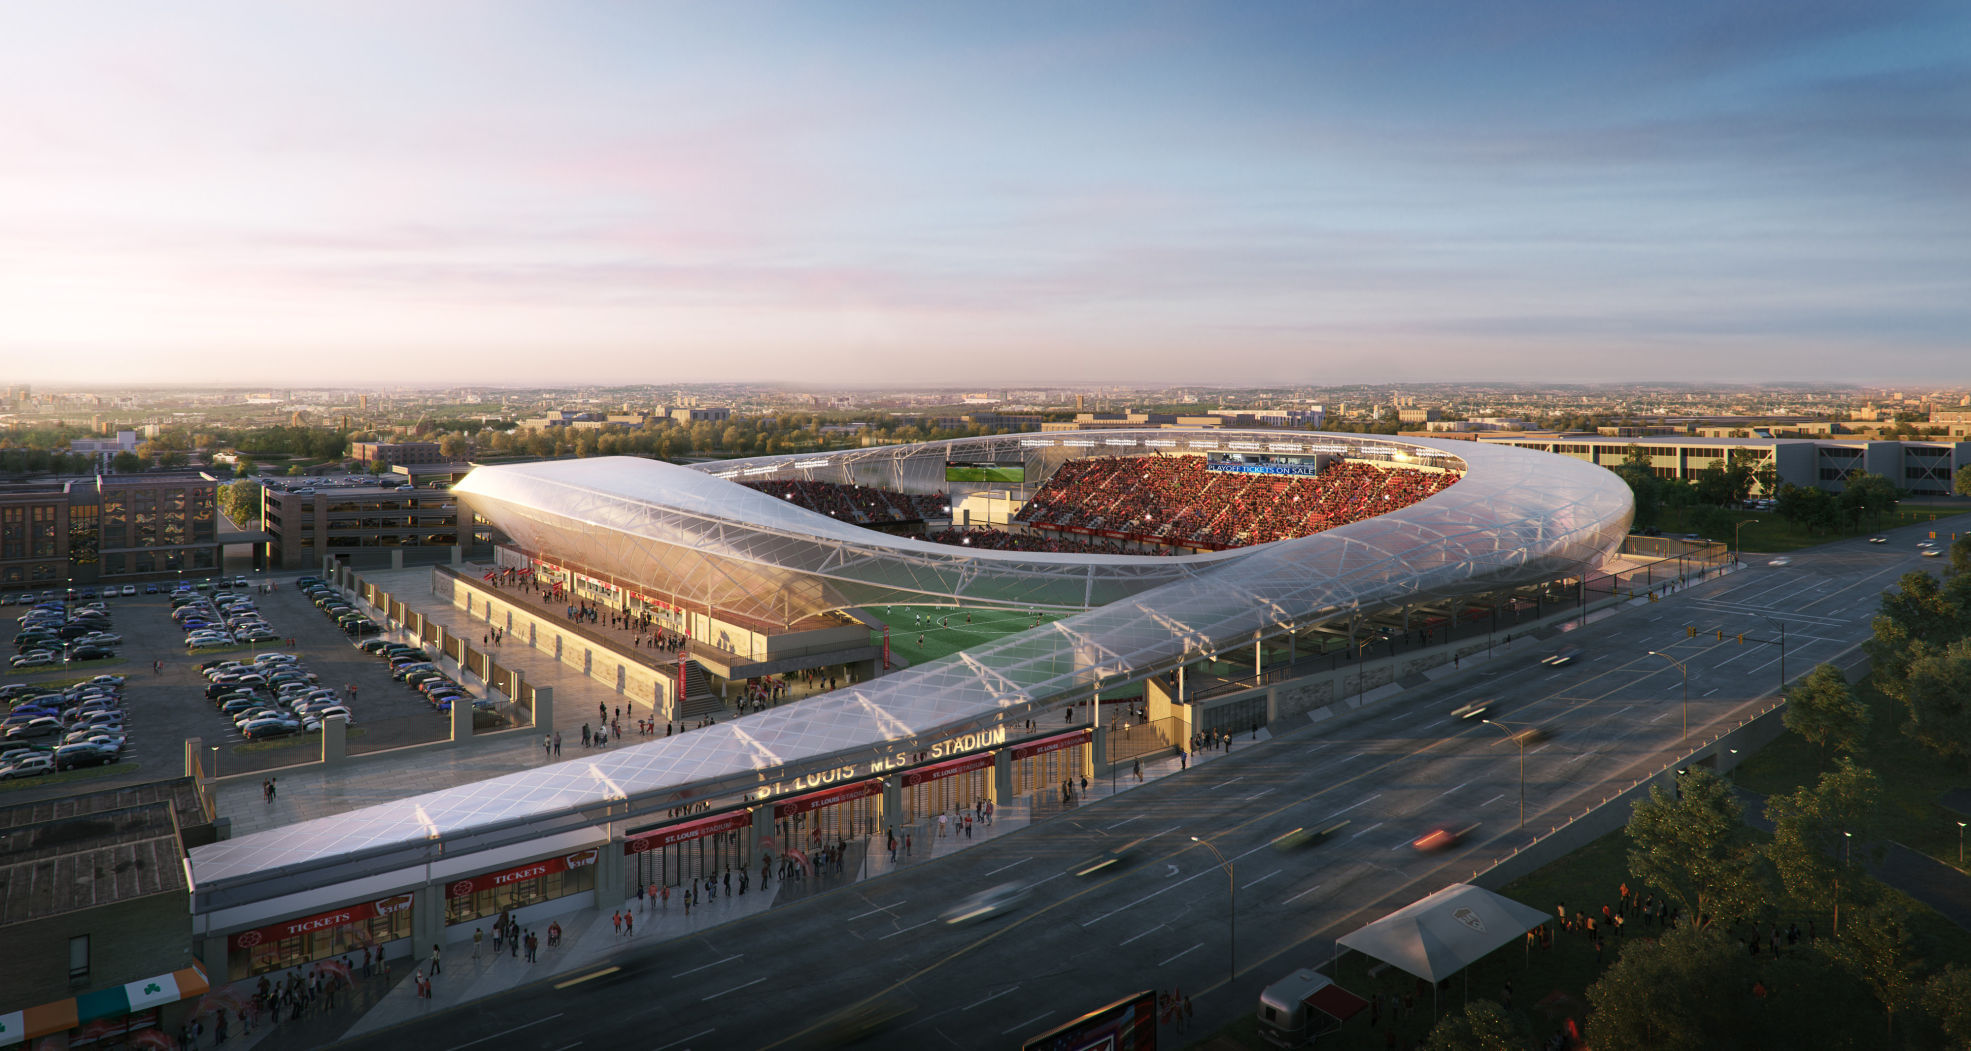 MLS stadium in STL won't be on April ballot